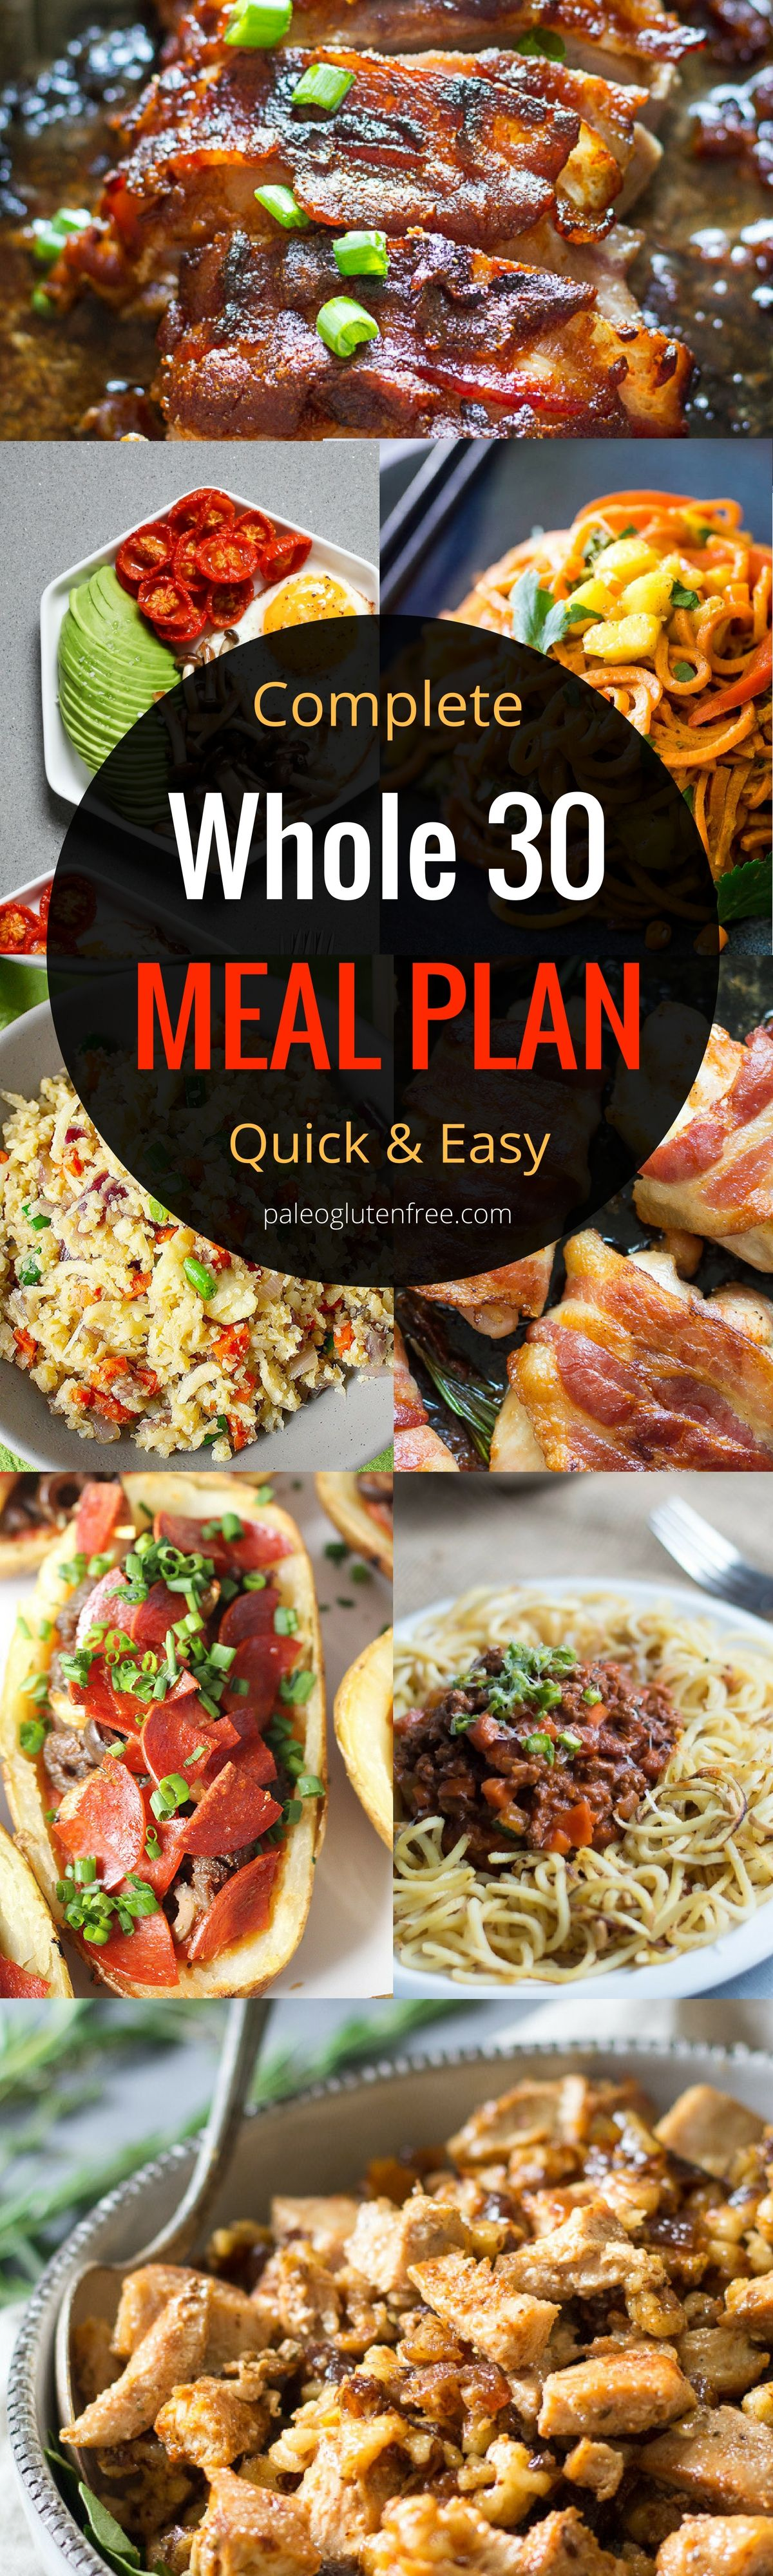 5 Whole30-Approved Recipes To Jump-Start Your Healthy New Year Of Eating 5 Whole30-Approved Recipes To Jump-Start Your Healthy New Year Of Eating new images